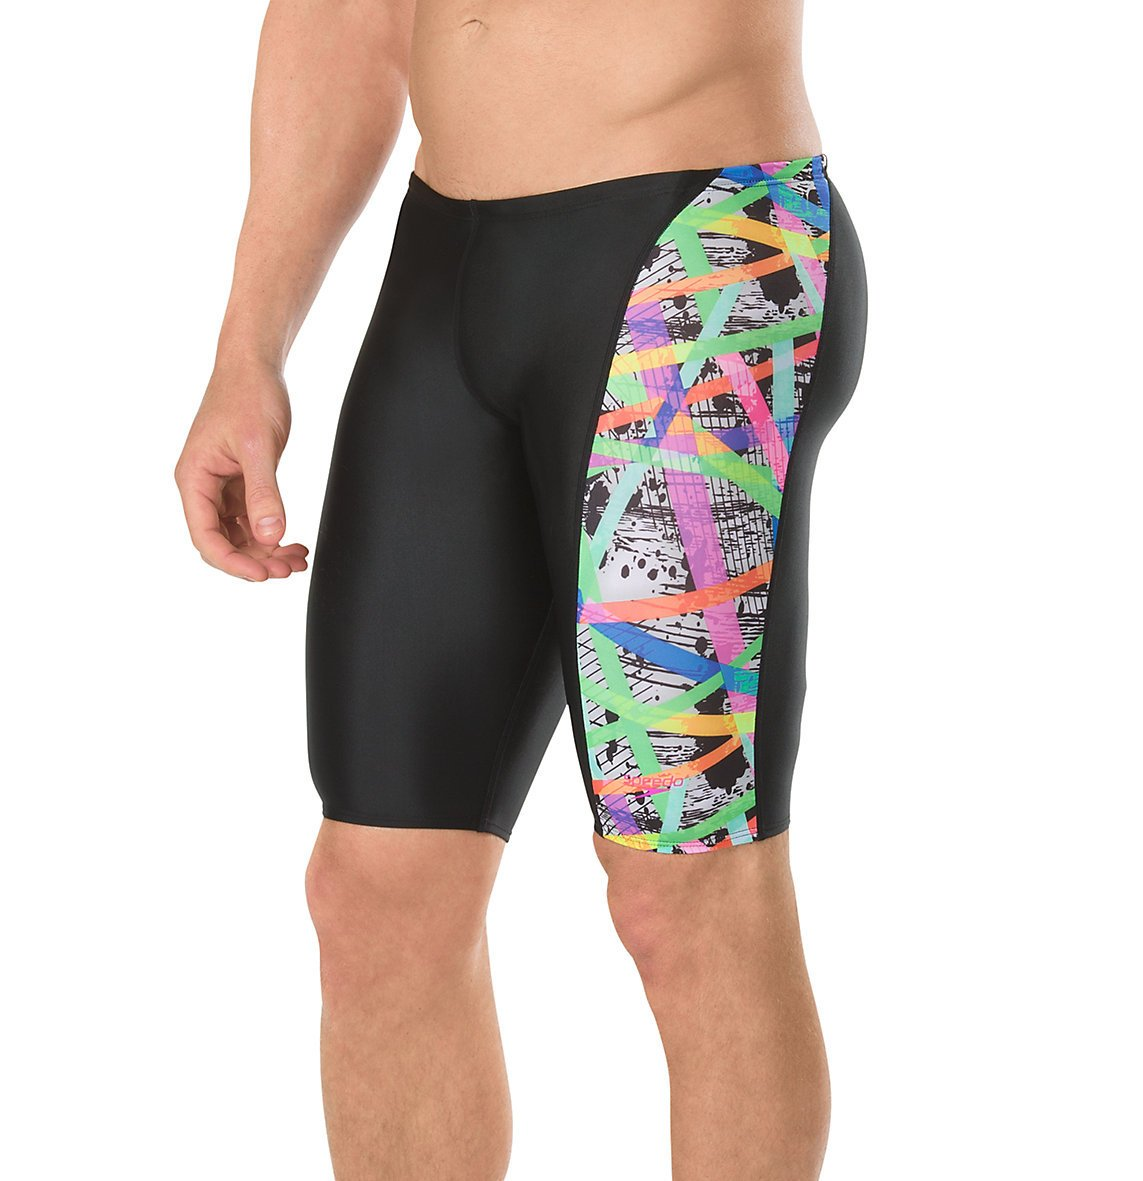 Speedo Men's Flip turns Jammer Pro Lt Swimsuit, 30, Purple/Pink